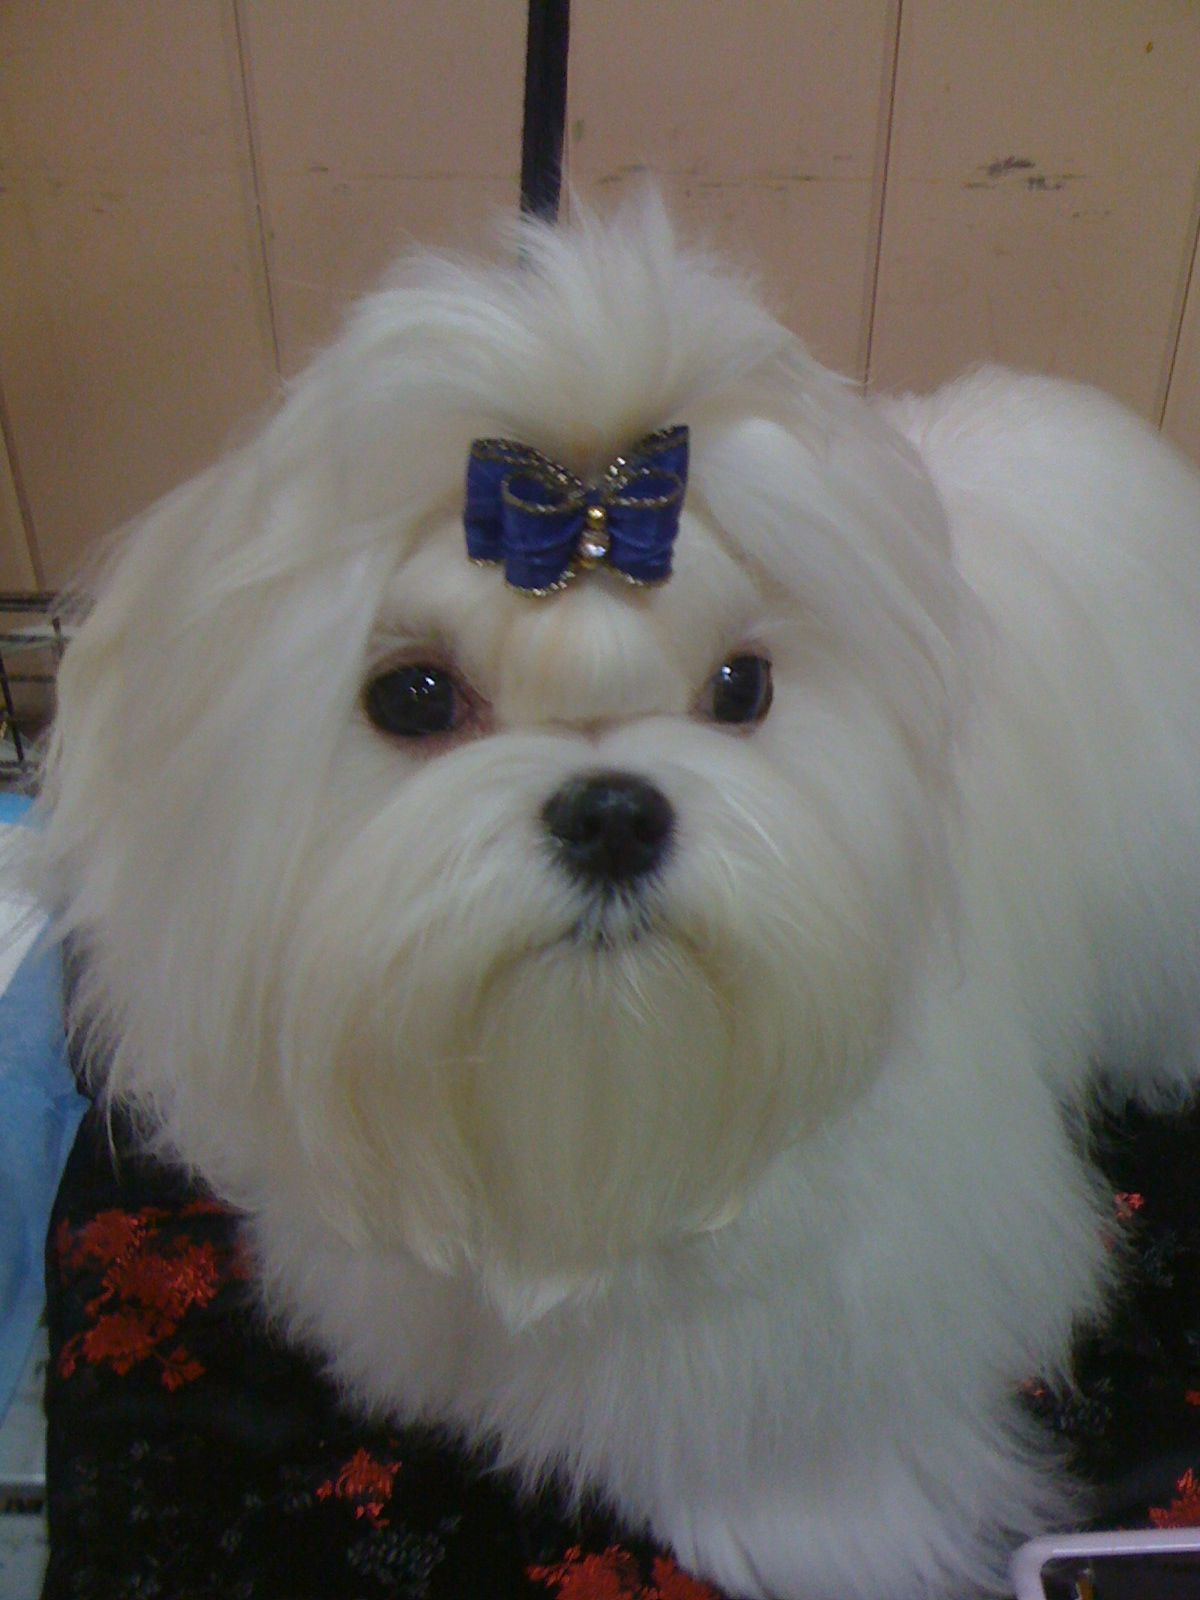 Maltese puppies must be at least 6 month old to be shown at AKC event and are often shown in a single topnotch. Its easier because they are often moving target to groom at this age. Cute gets them a long way.